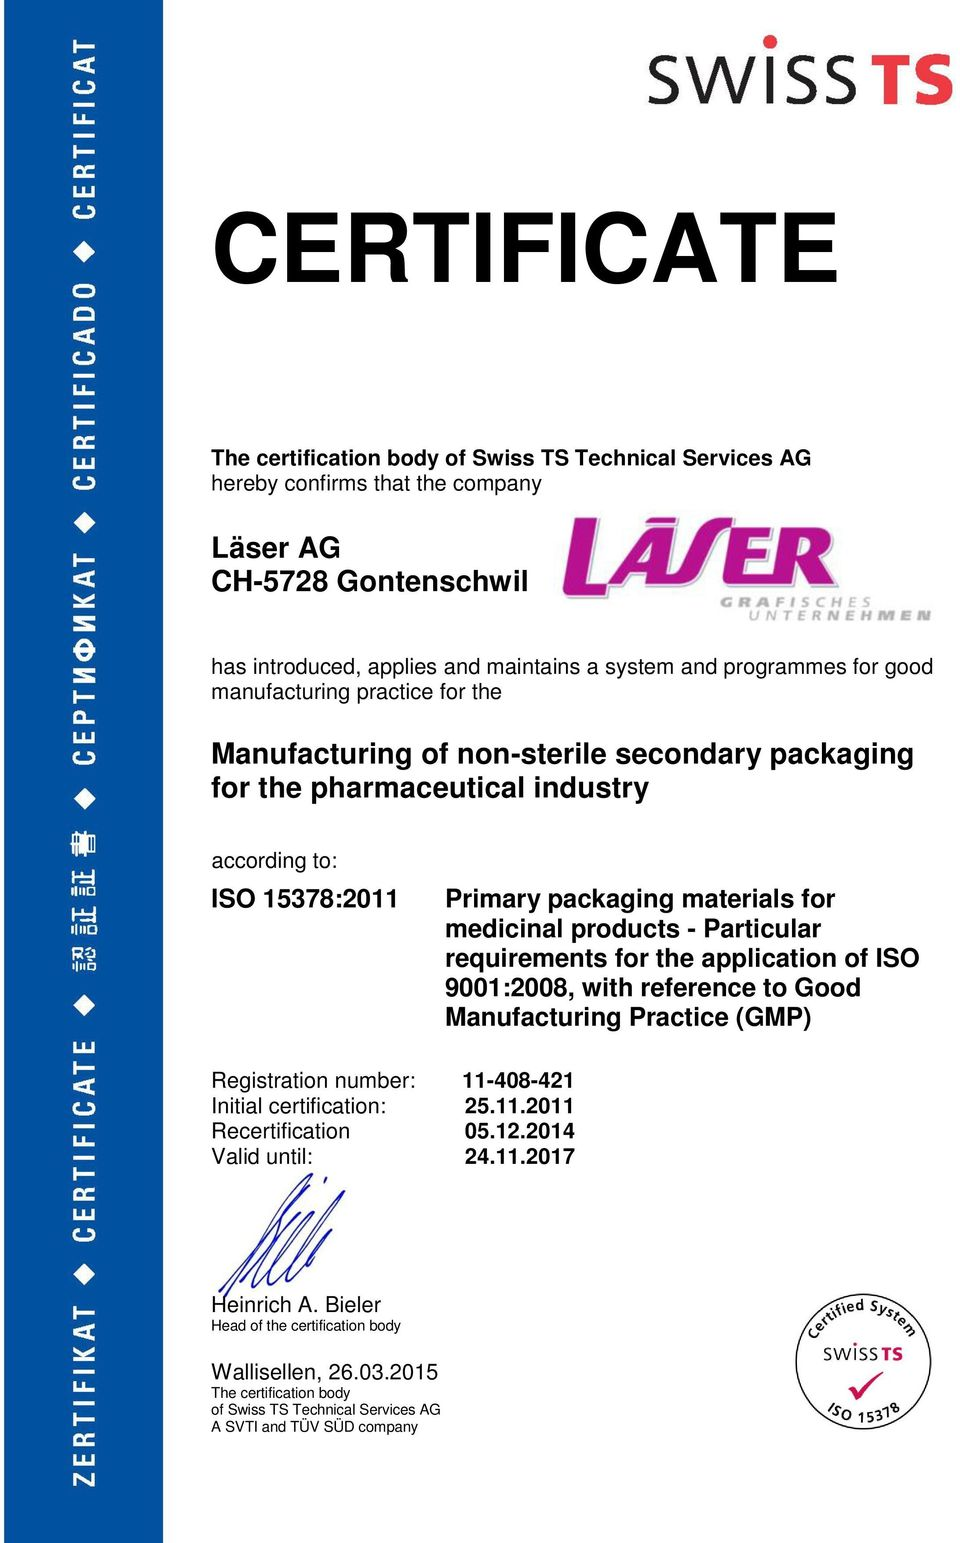 products - Particular requirements for the application of ISO 9001:2008, with reference to Good Manufacturing Practice (GMP) Registration number: 11-408-421 Initial certification: 25.